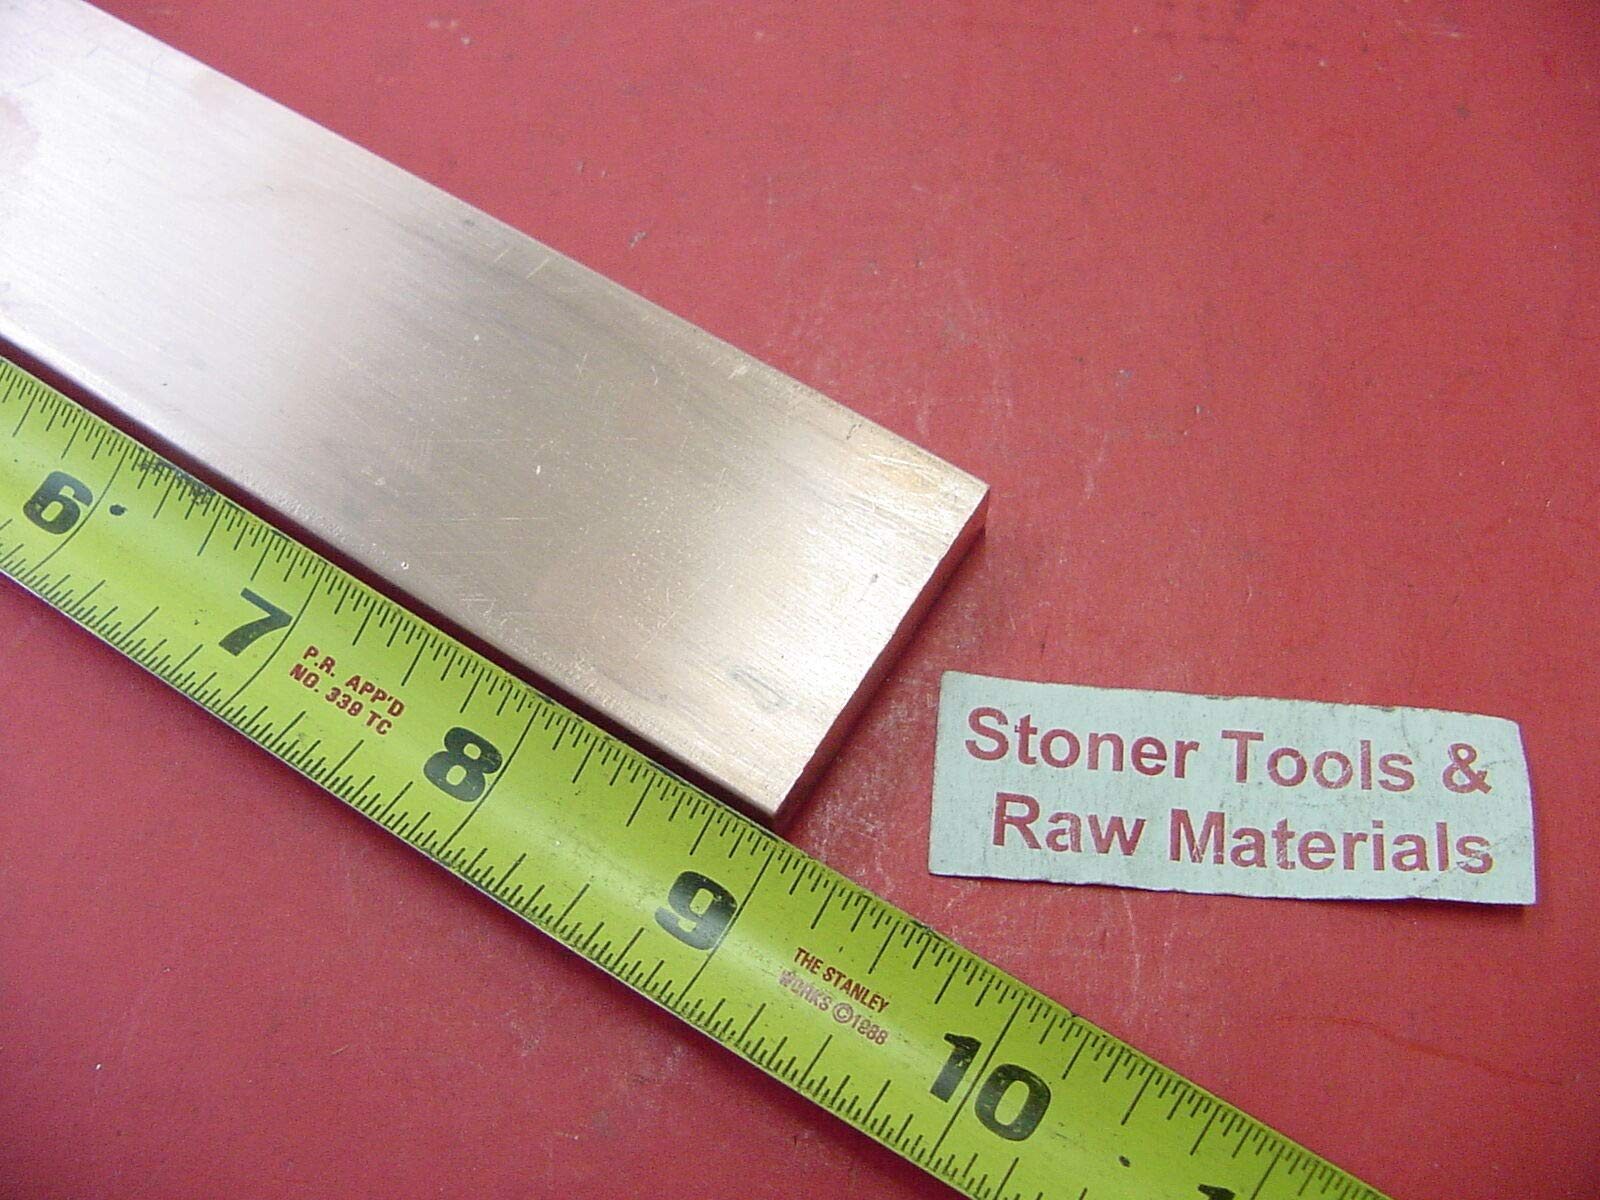 3/8''x 1-1/2'' C110 COPPER BAR 9'' long Solid Flat Bar .375'' Mill Bus Bar Stock H02 by Okumahome